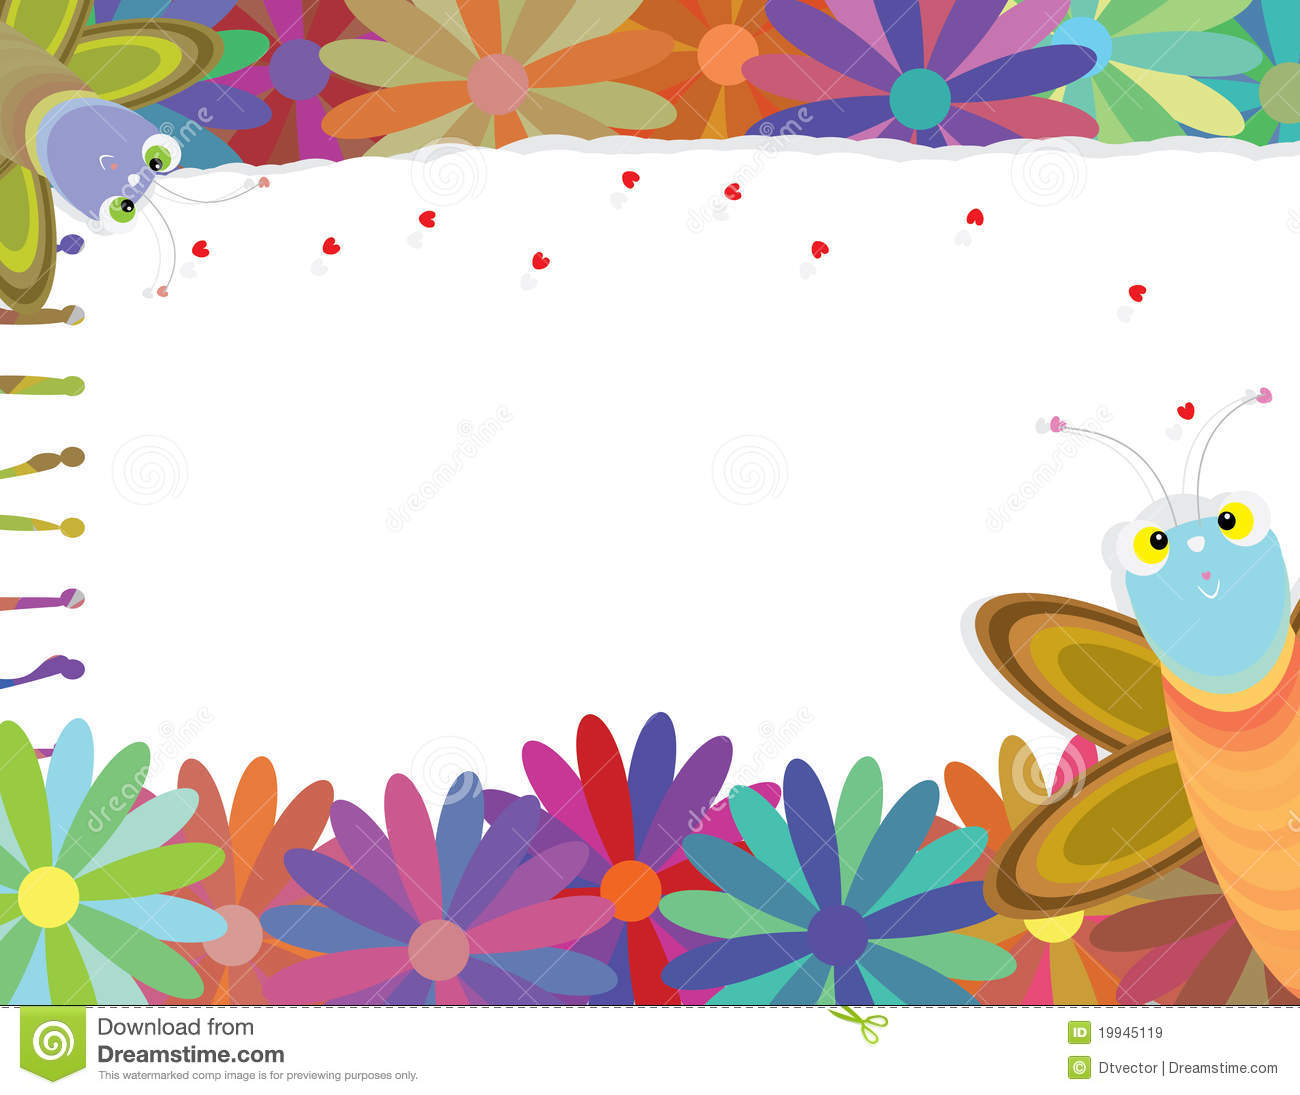 Simple Flower Border Designs For A4 Paper Butterfly follow loves ...